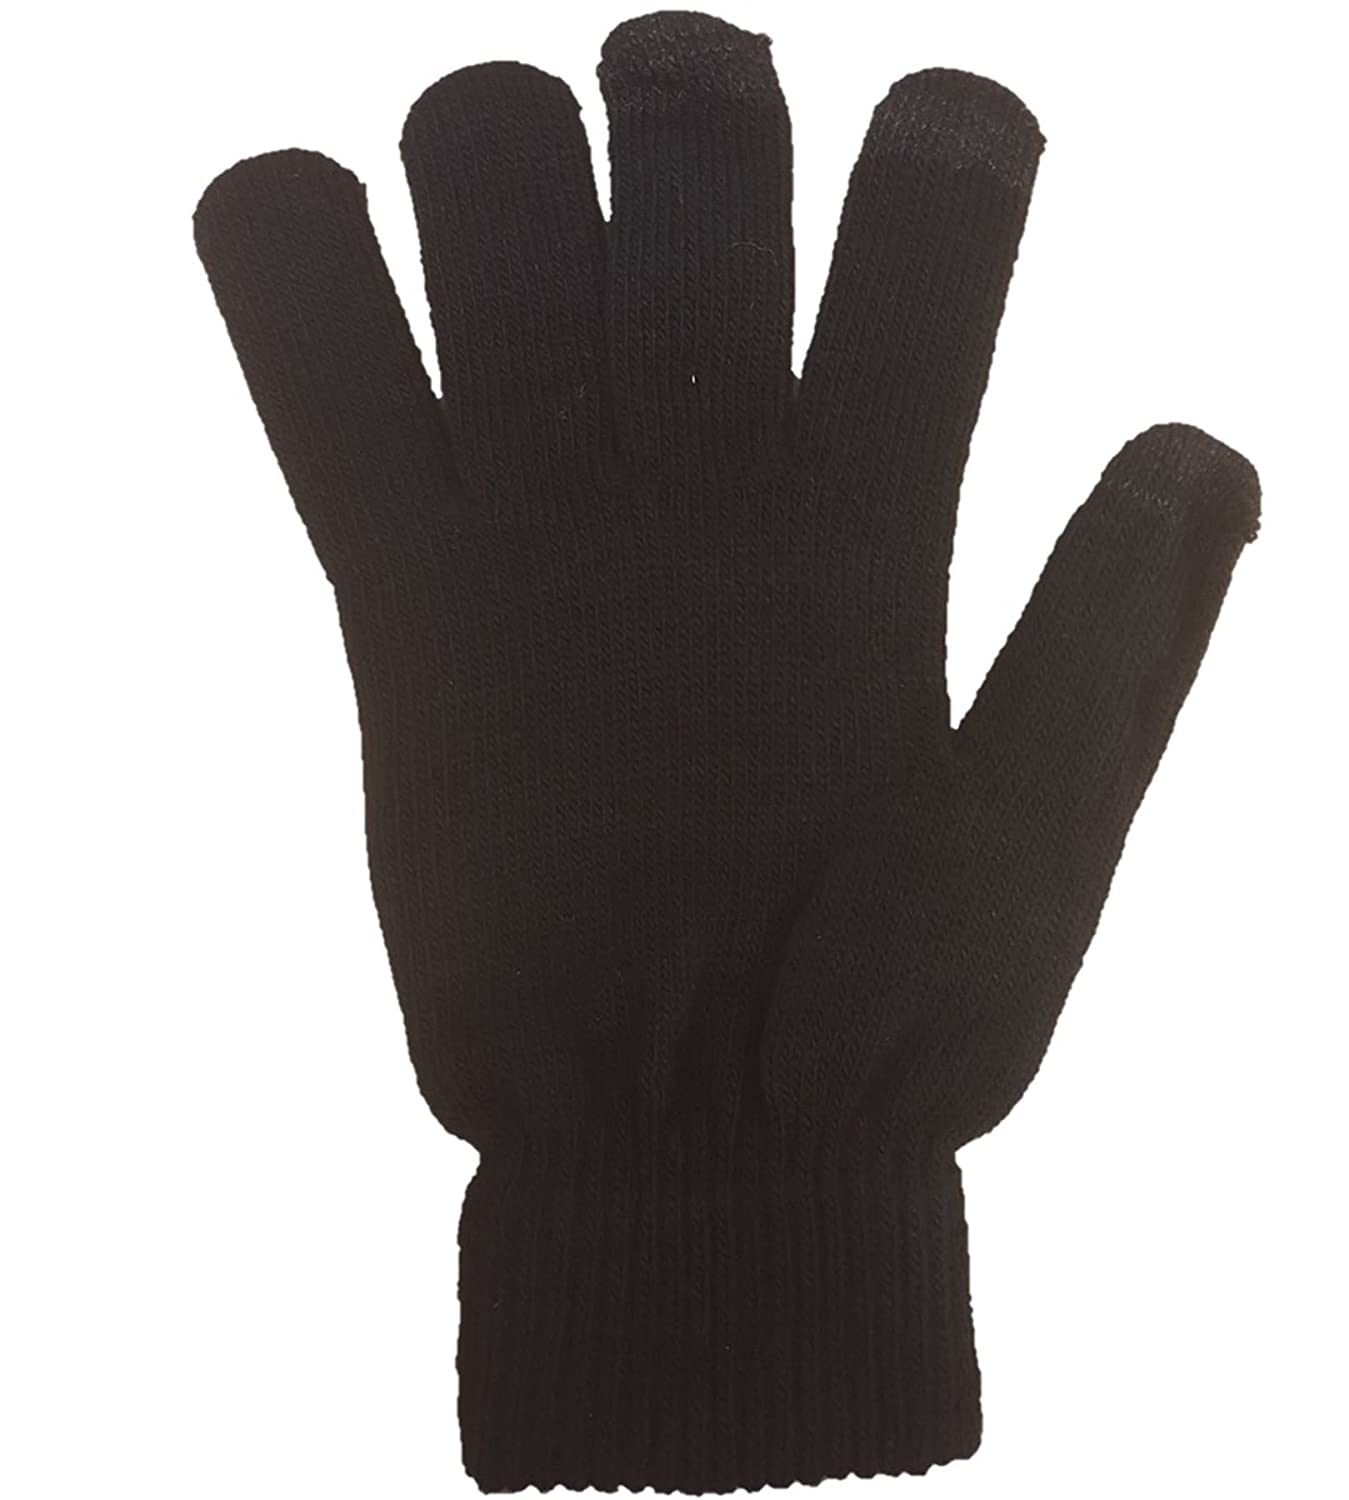 Mens gloves use iphone - Mens Or Ladies Touch Screen Warm Thermal Winter Gloves Ideal For Phones Tablets